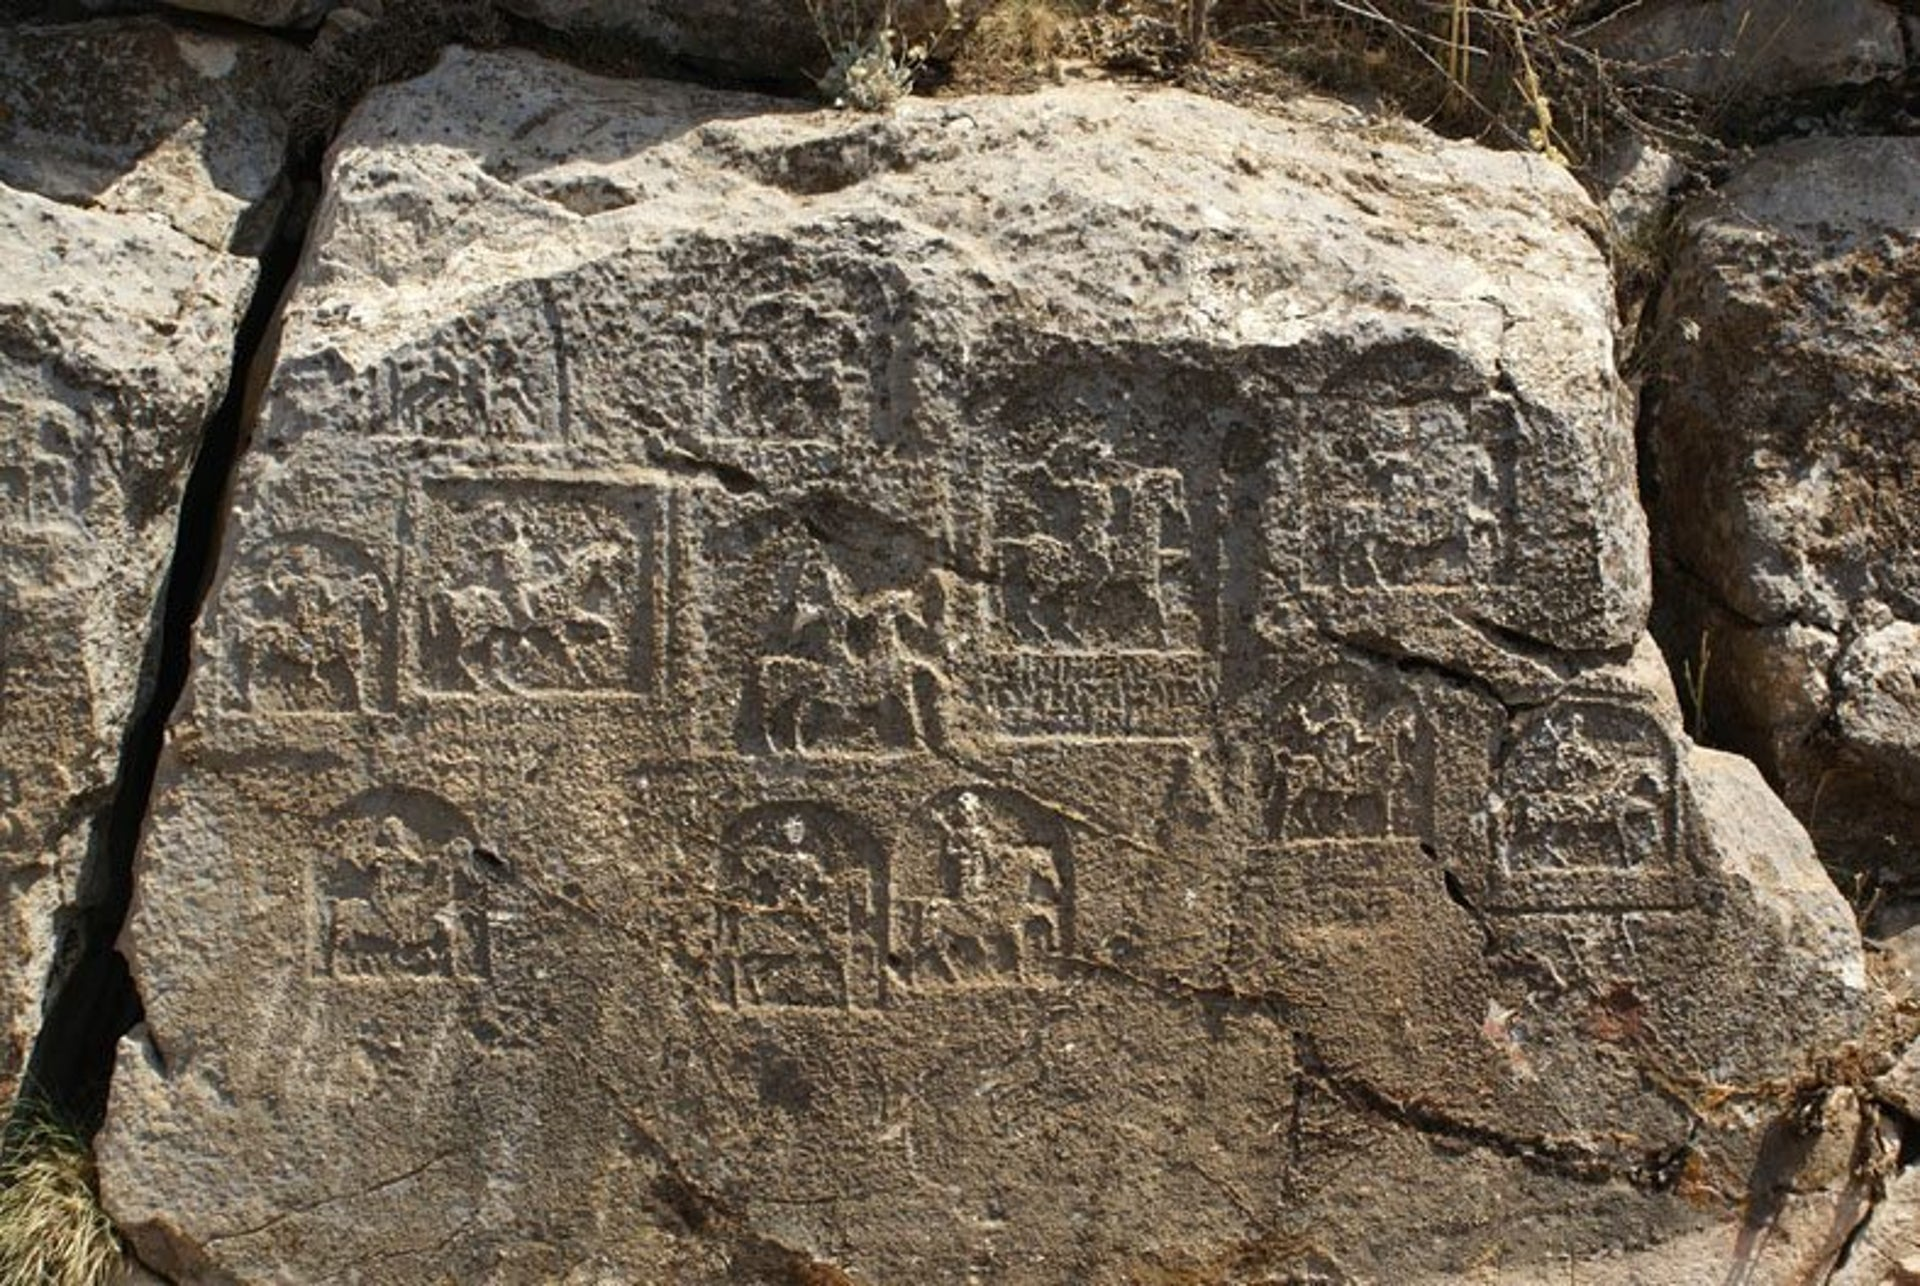 Open-air sanctuary with rock-cut reliefs of the rider-god Kakasbos, found in the Kibyratis, Turkey.